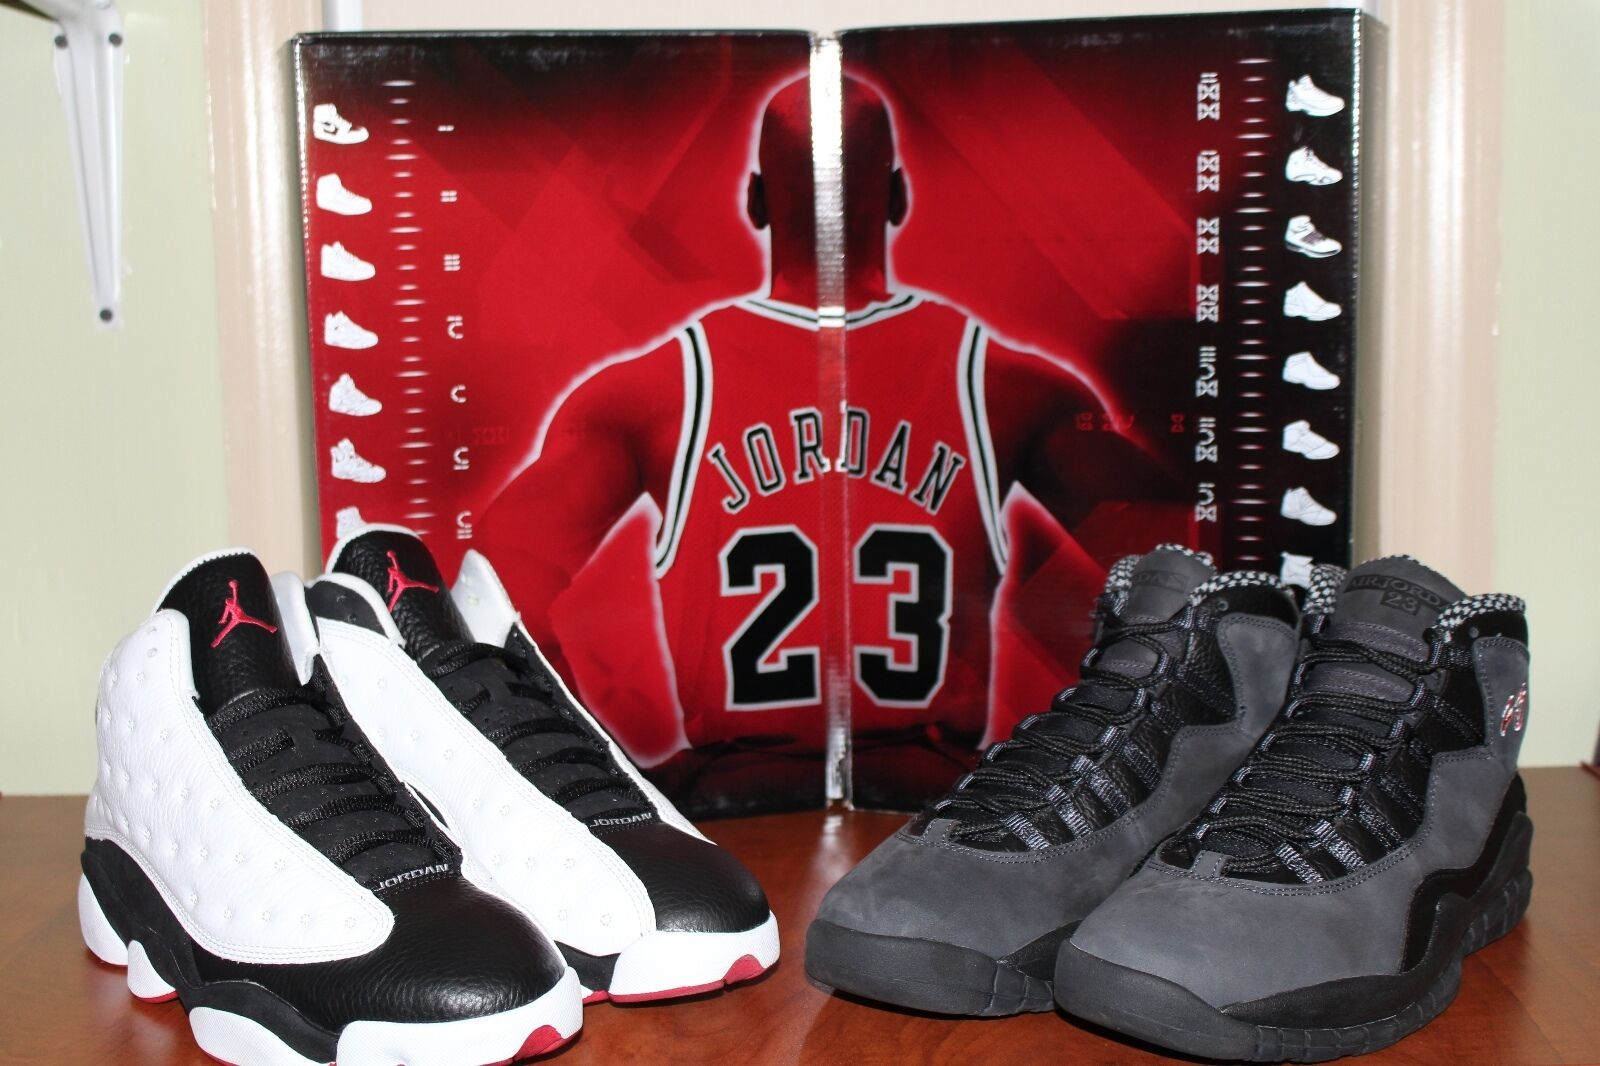 Nike Air Jordan Collezione CDP Countdown Pack 13 10 sz. 9 DS Brand new